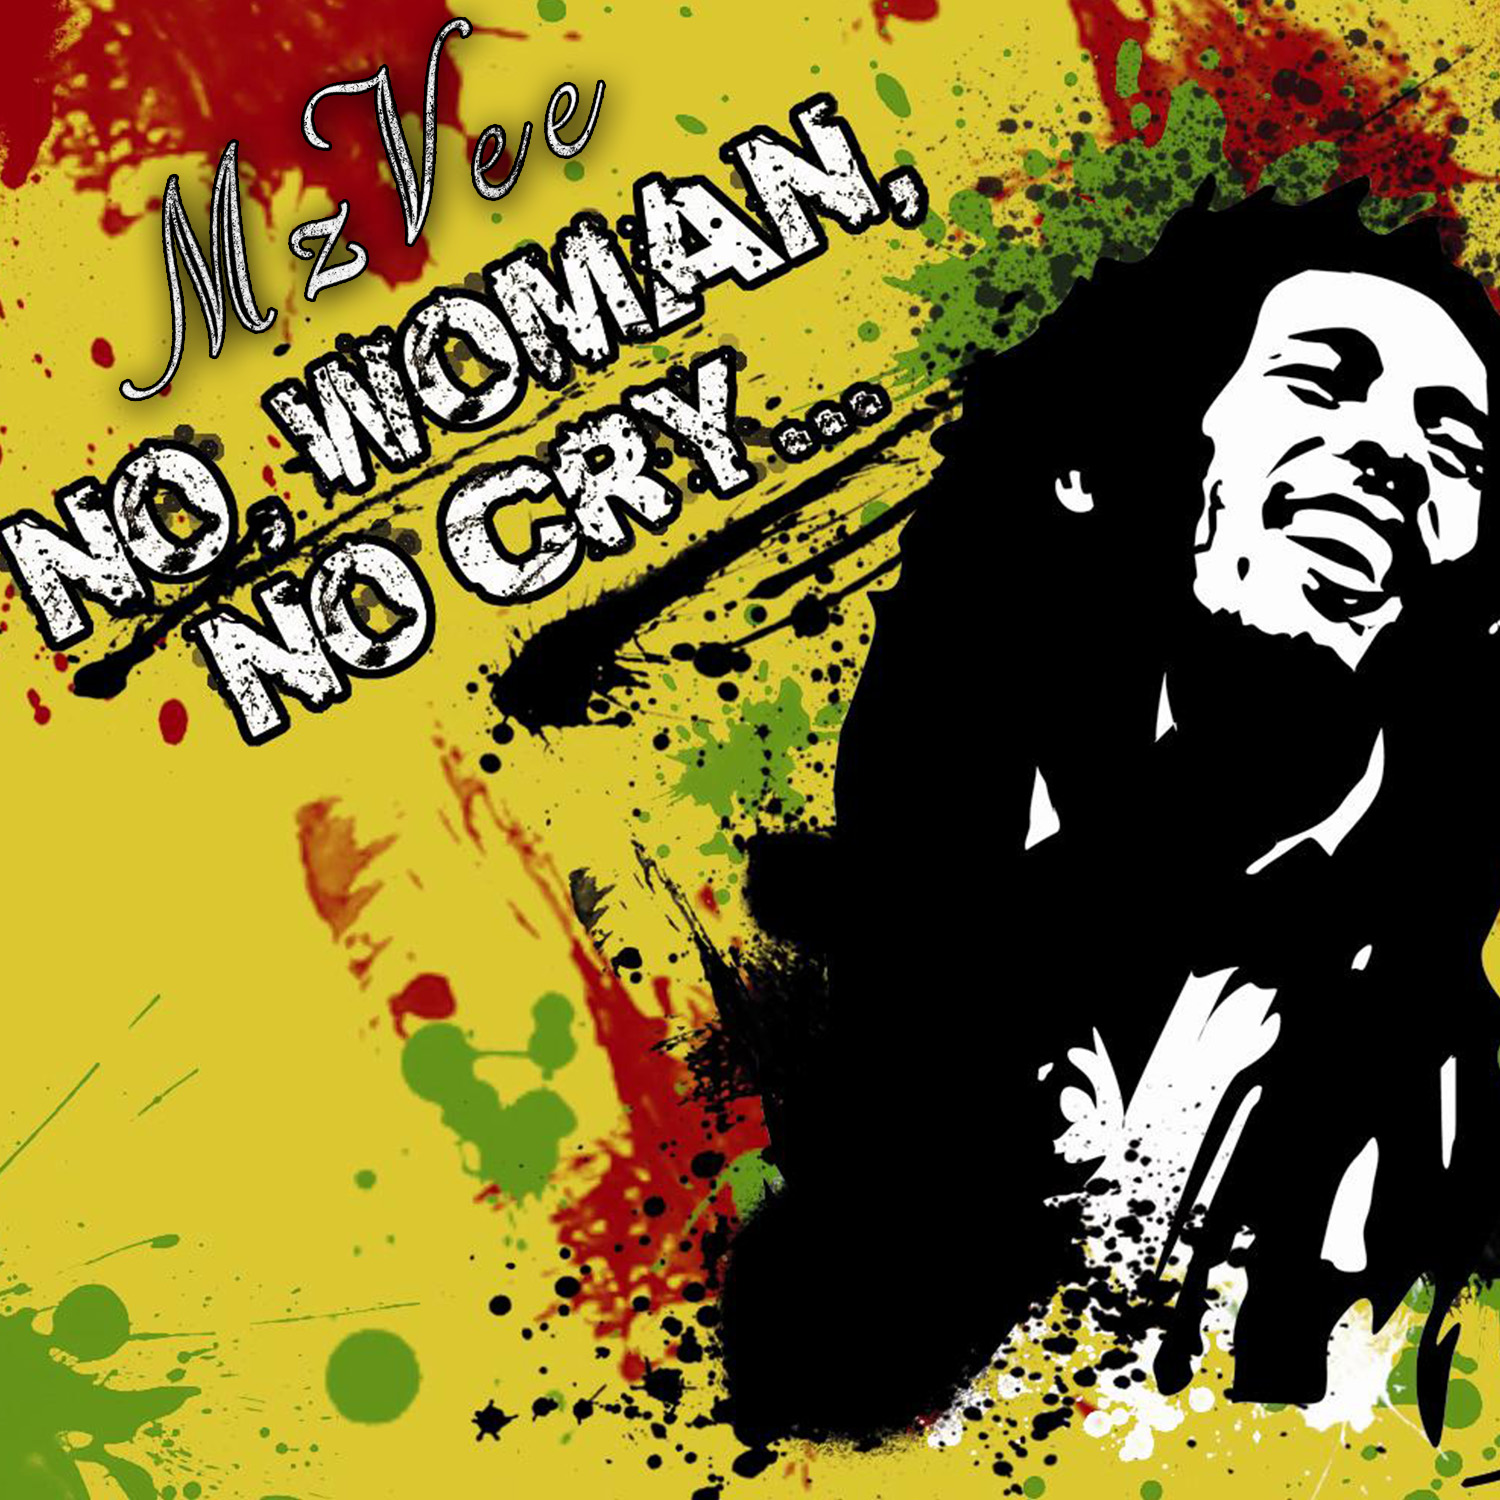 no woman no cry 7 explanations, 3 meanings to no woman no cry lyrics by bob marley: no woman, no cry (repeat 4 times) / said said / said i remember when we.